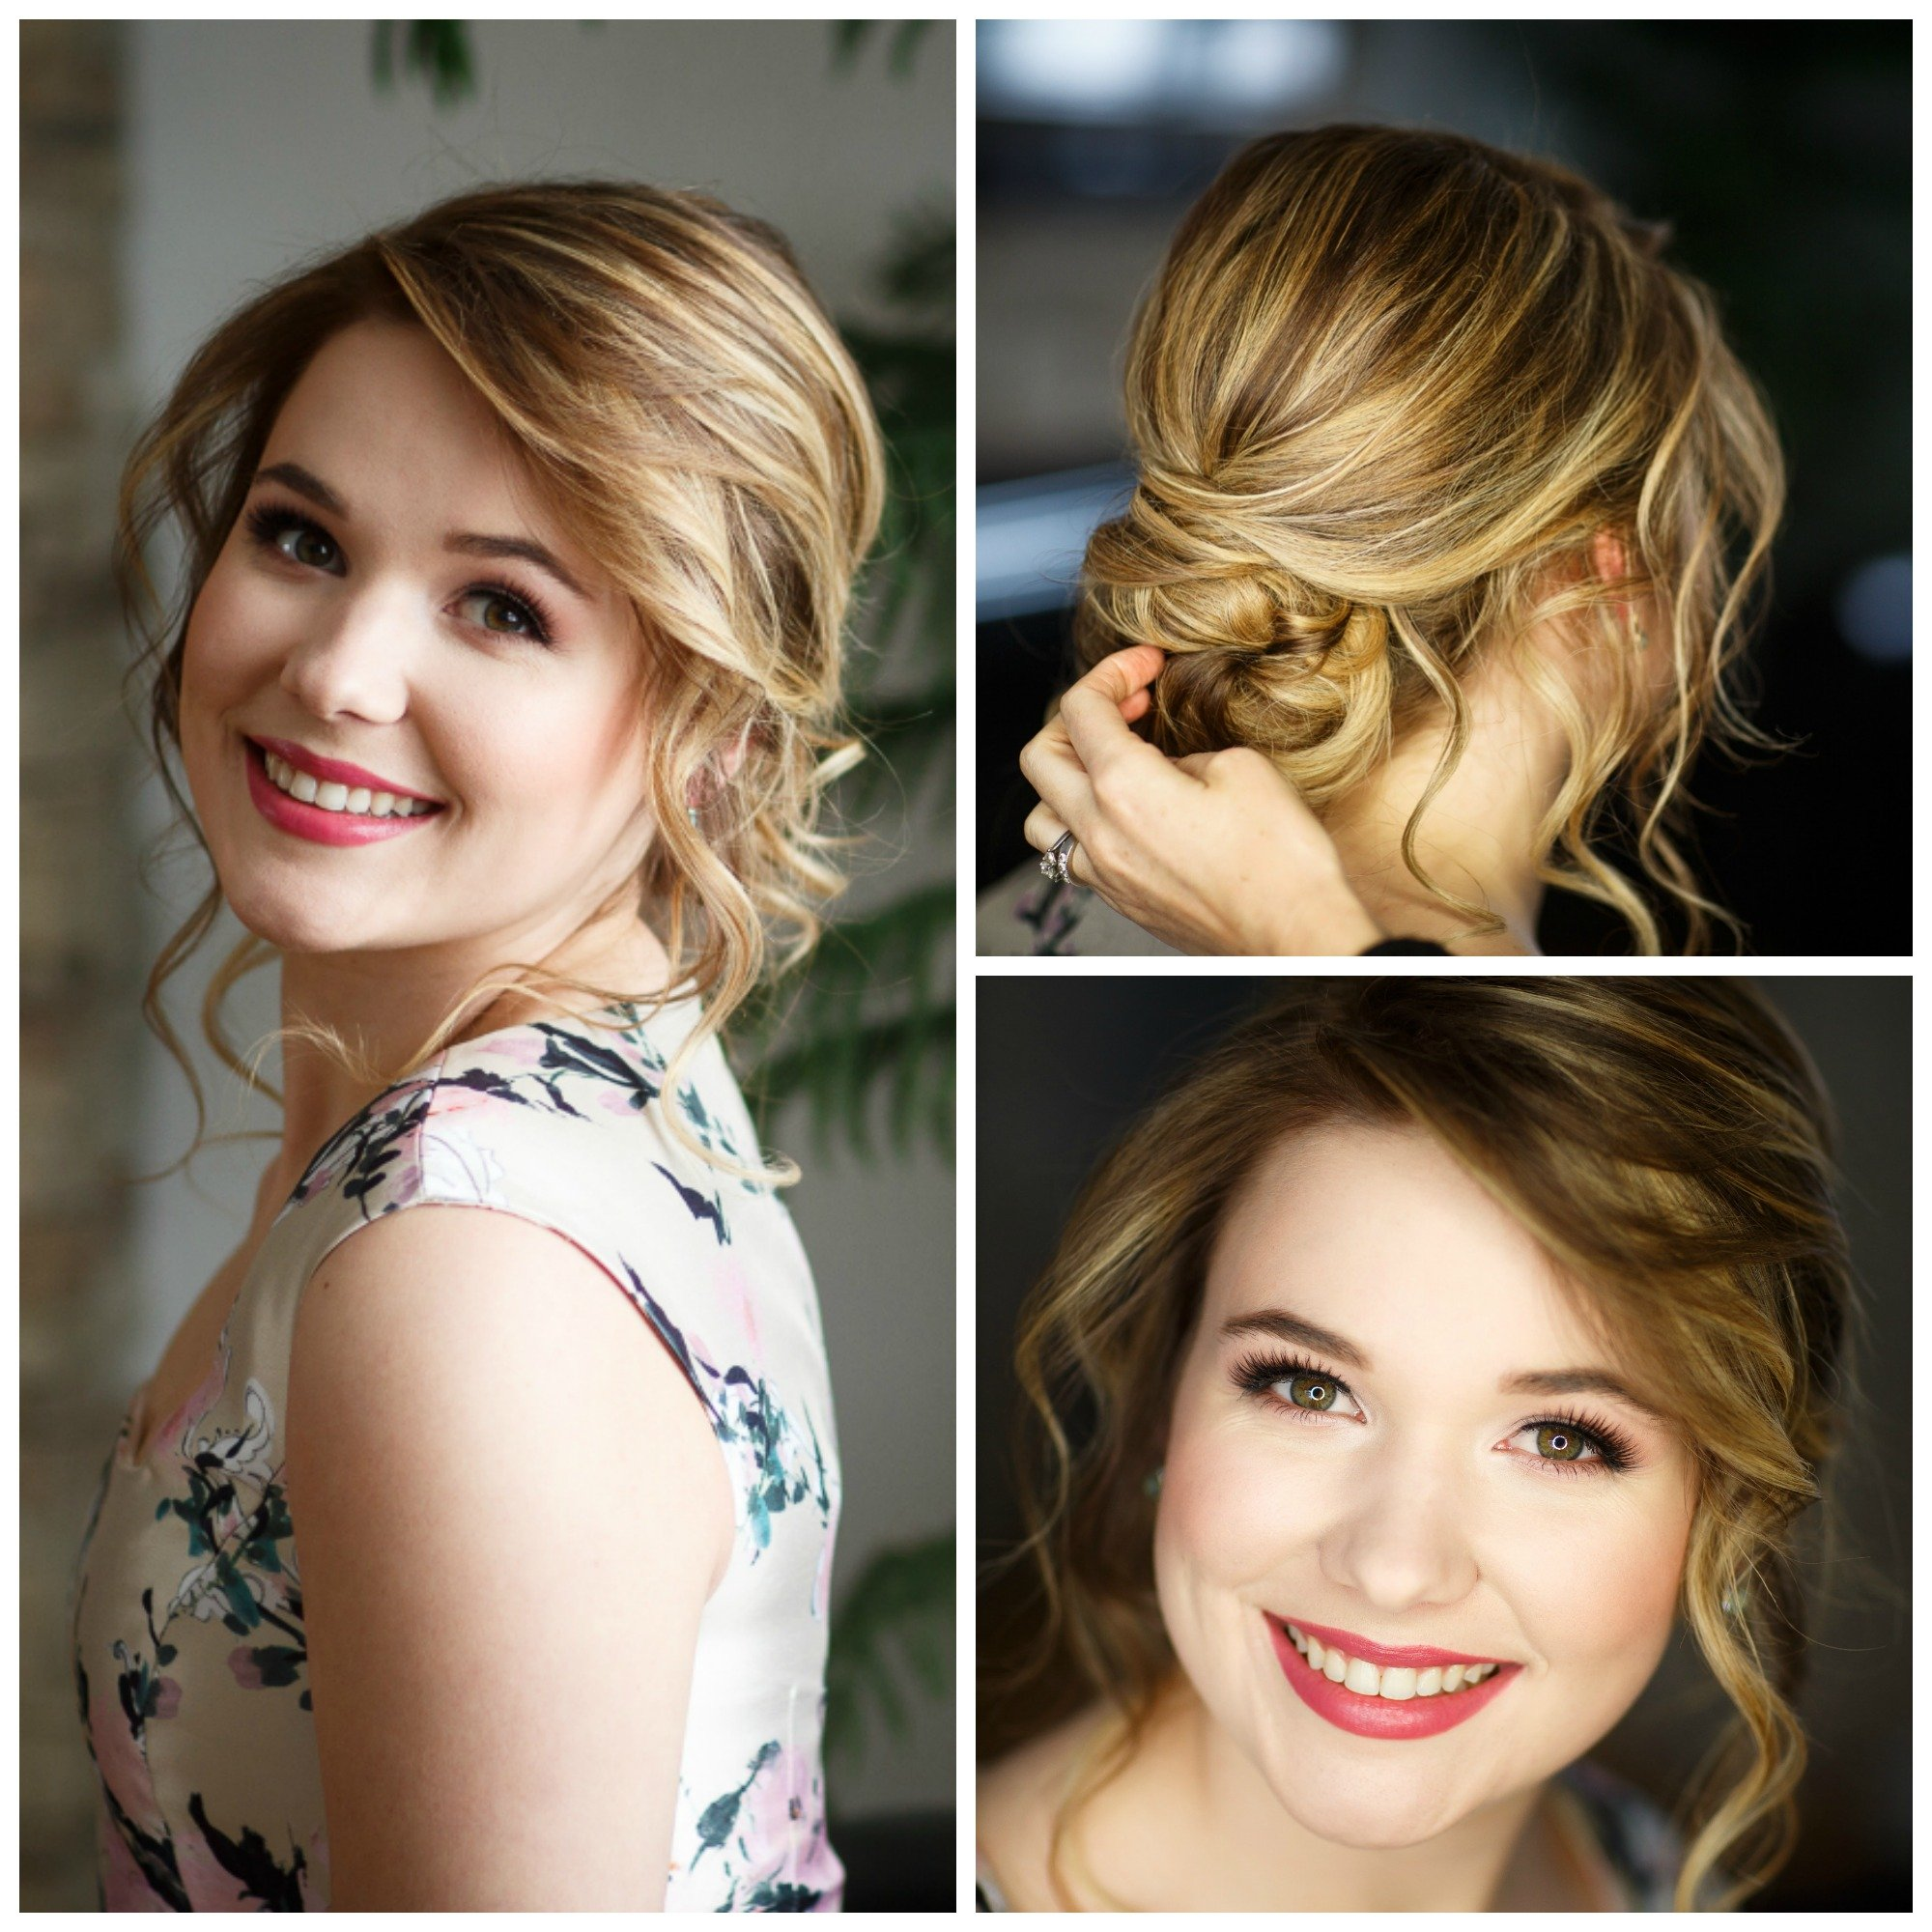 bright prom makeup and hair by Ottawa best makeup artist Klava Z and talented hairstylist Topknot Hairstyling